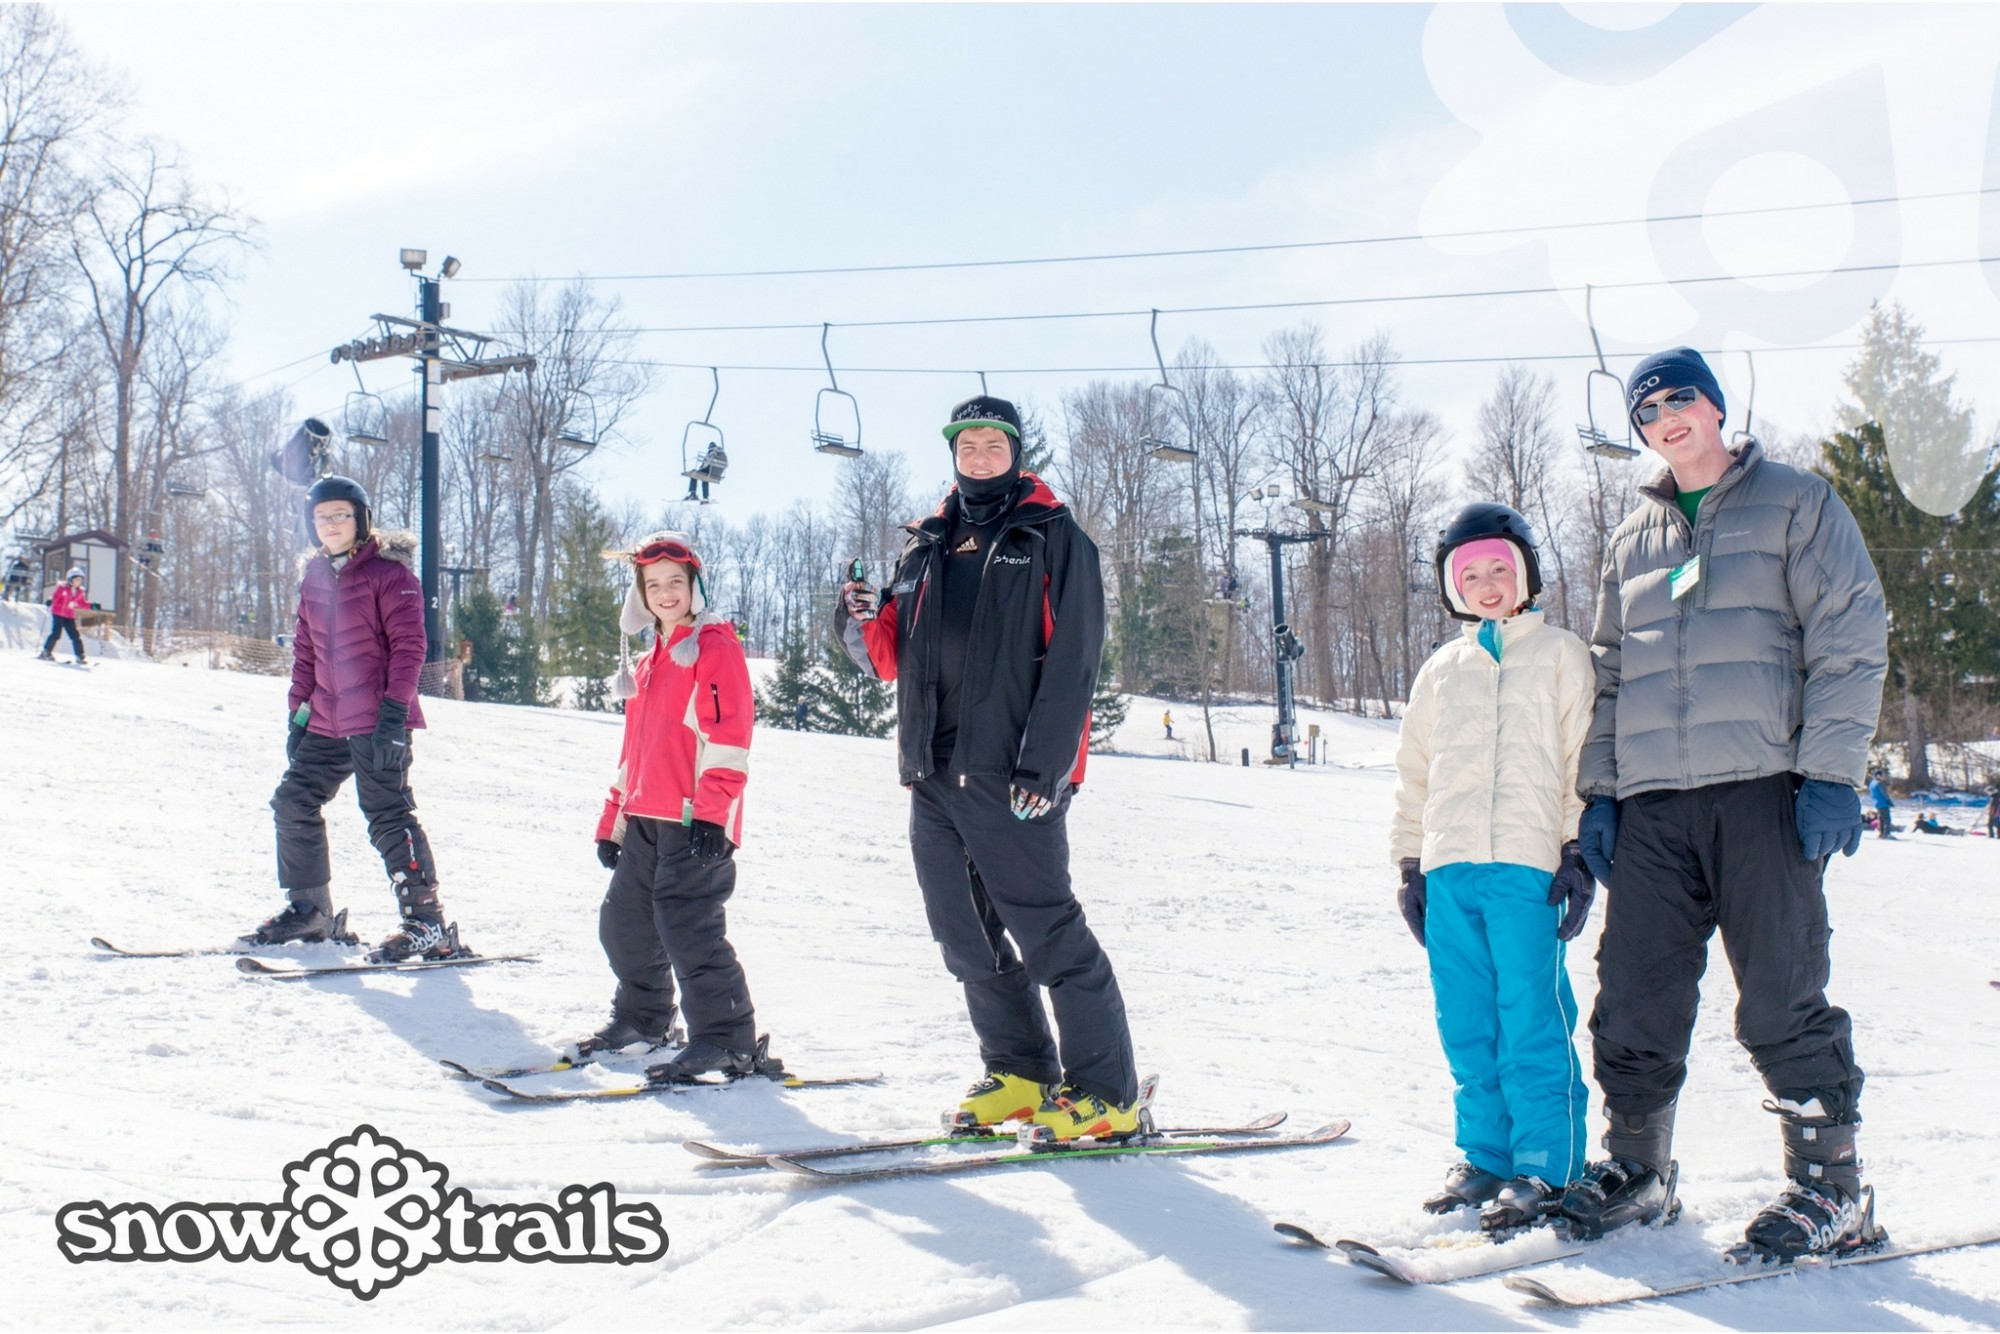 Group Ski Lesson at Snow Trails in Mansfield, Ohio